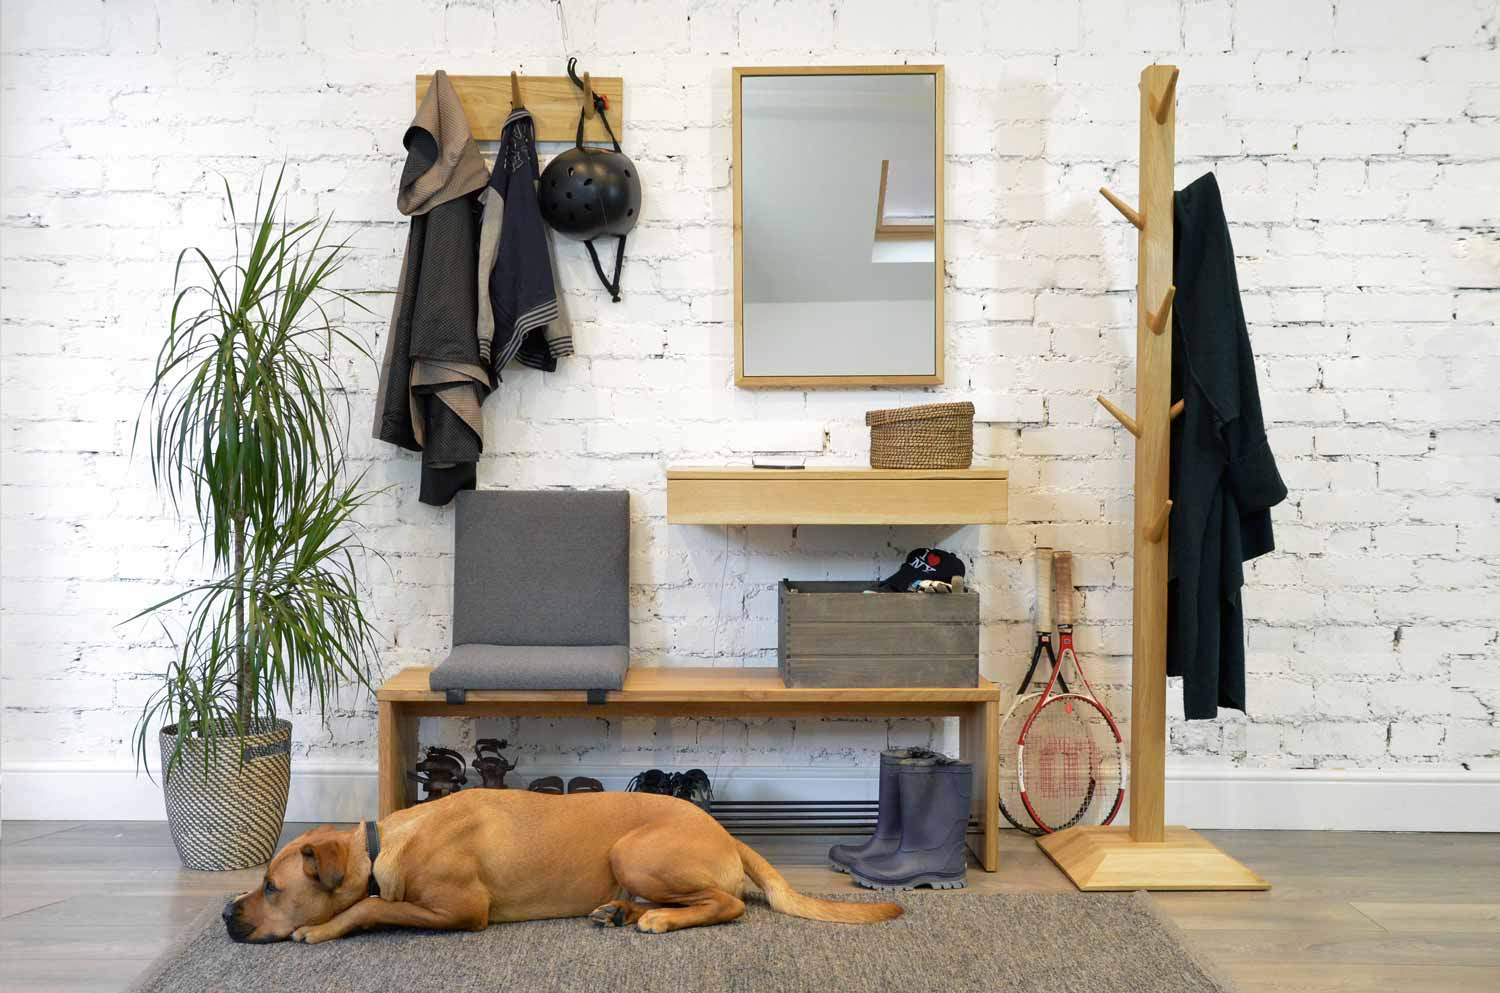 Vestibule hallway collection with our favourite pooch, Ramsey